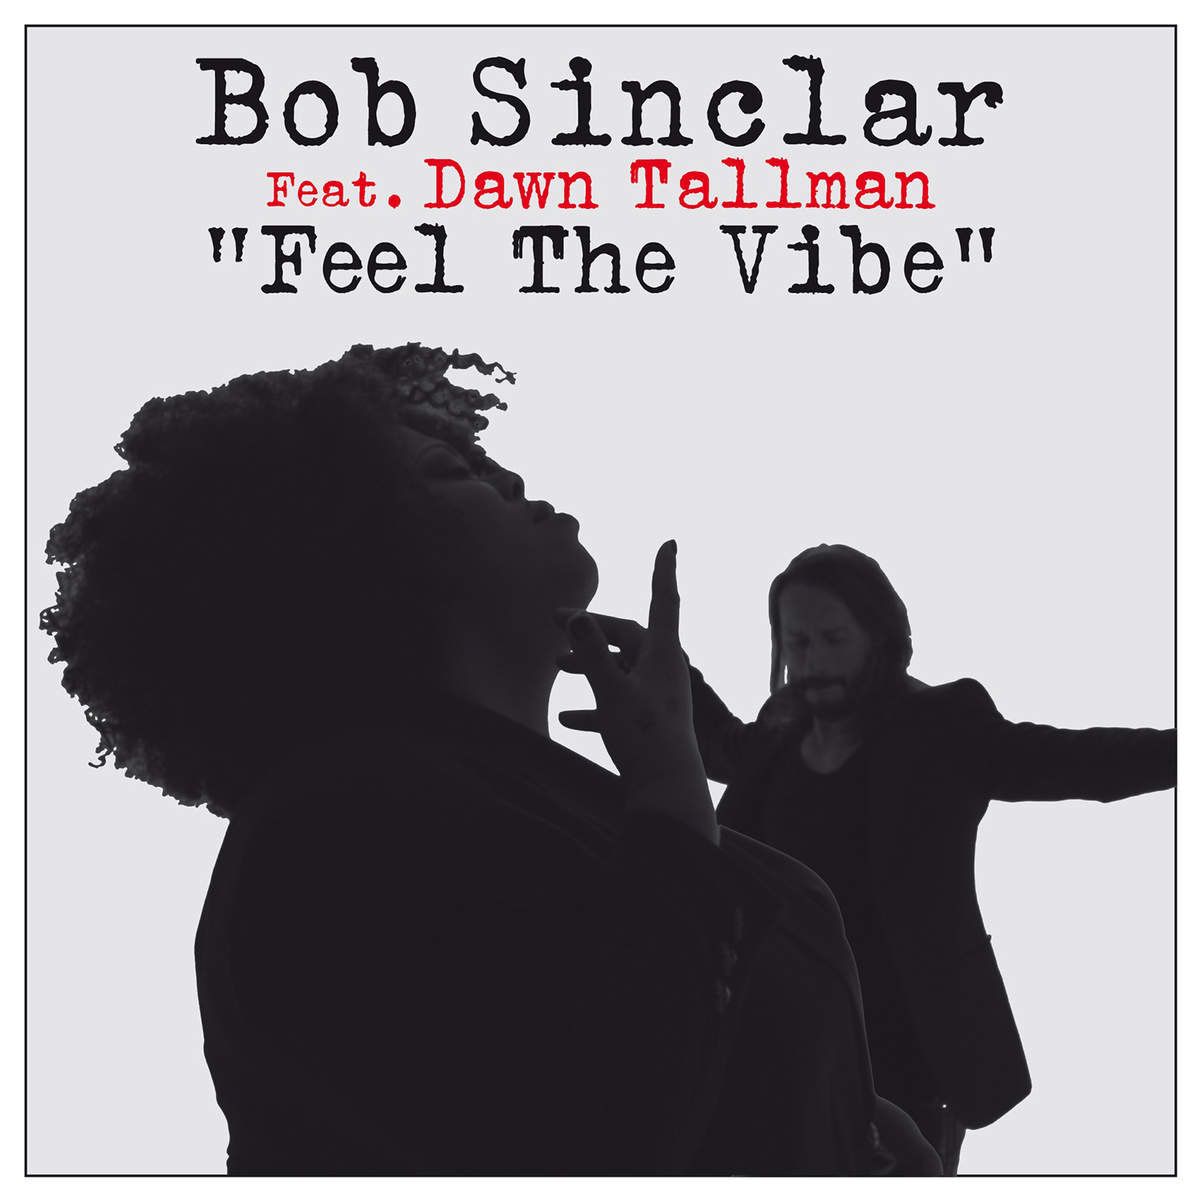 Bob Sinclar Ft. Dawn Tallman – Feel The Vibe (Video)